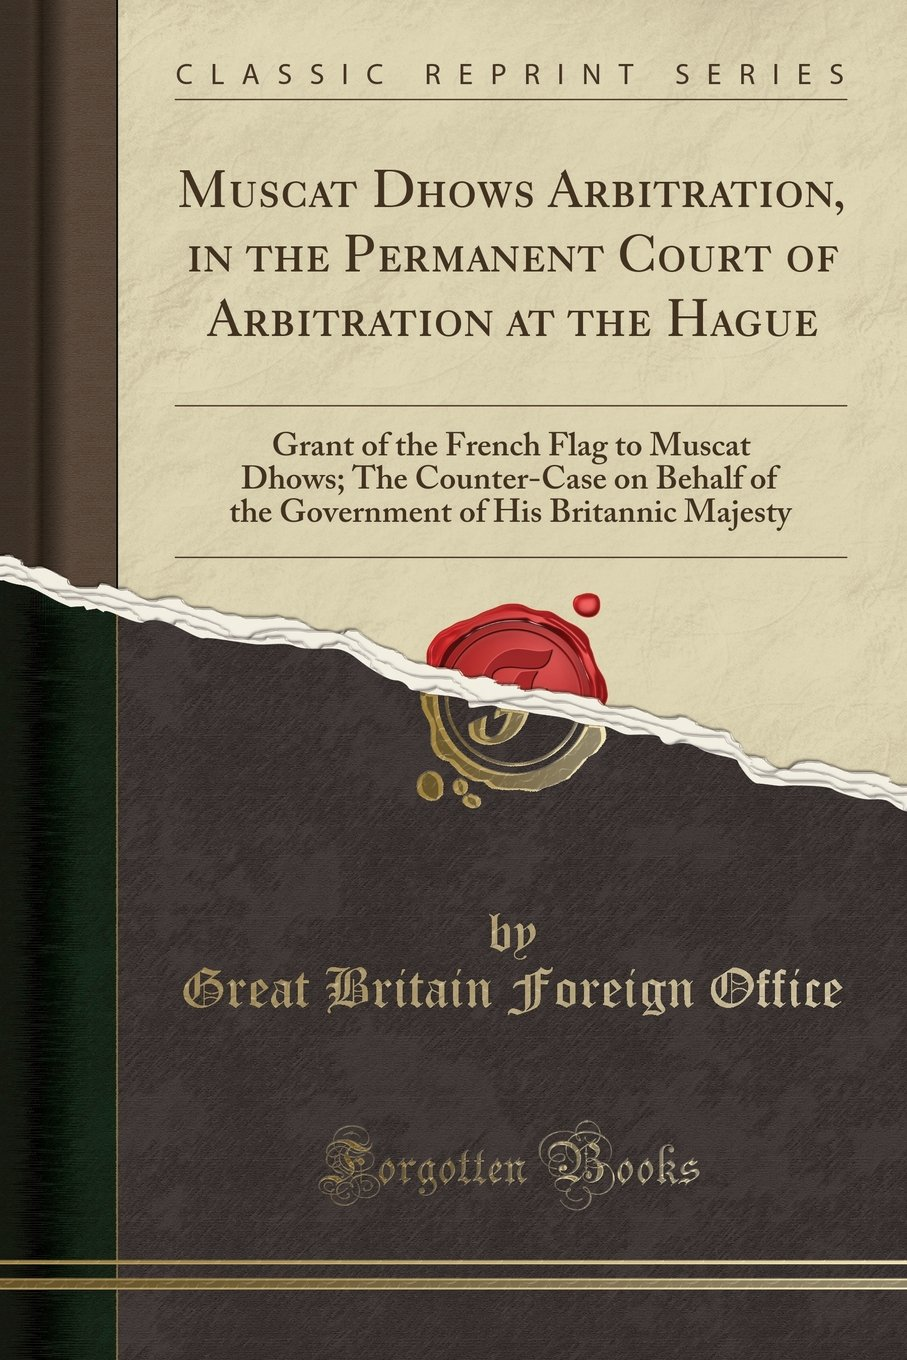 Muscat Dhows Arbitration, in the Permanent Court of Arbitration at the Hague: Grant of the French Flag to Muscat Dhows; The Counter-Case on Behalf of ... of His Britannic Majesty (Classic Reprint) ebook